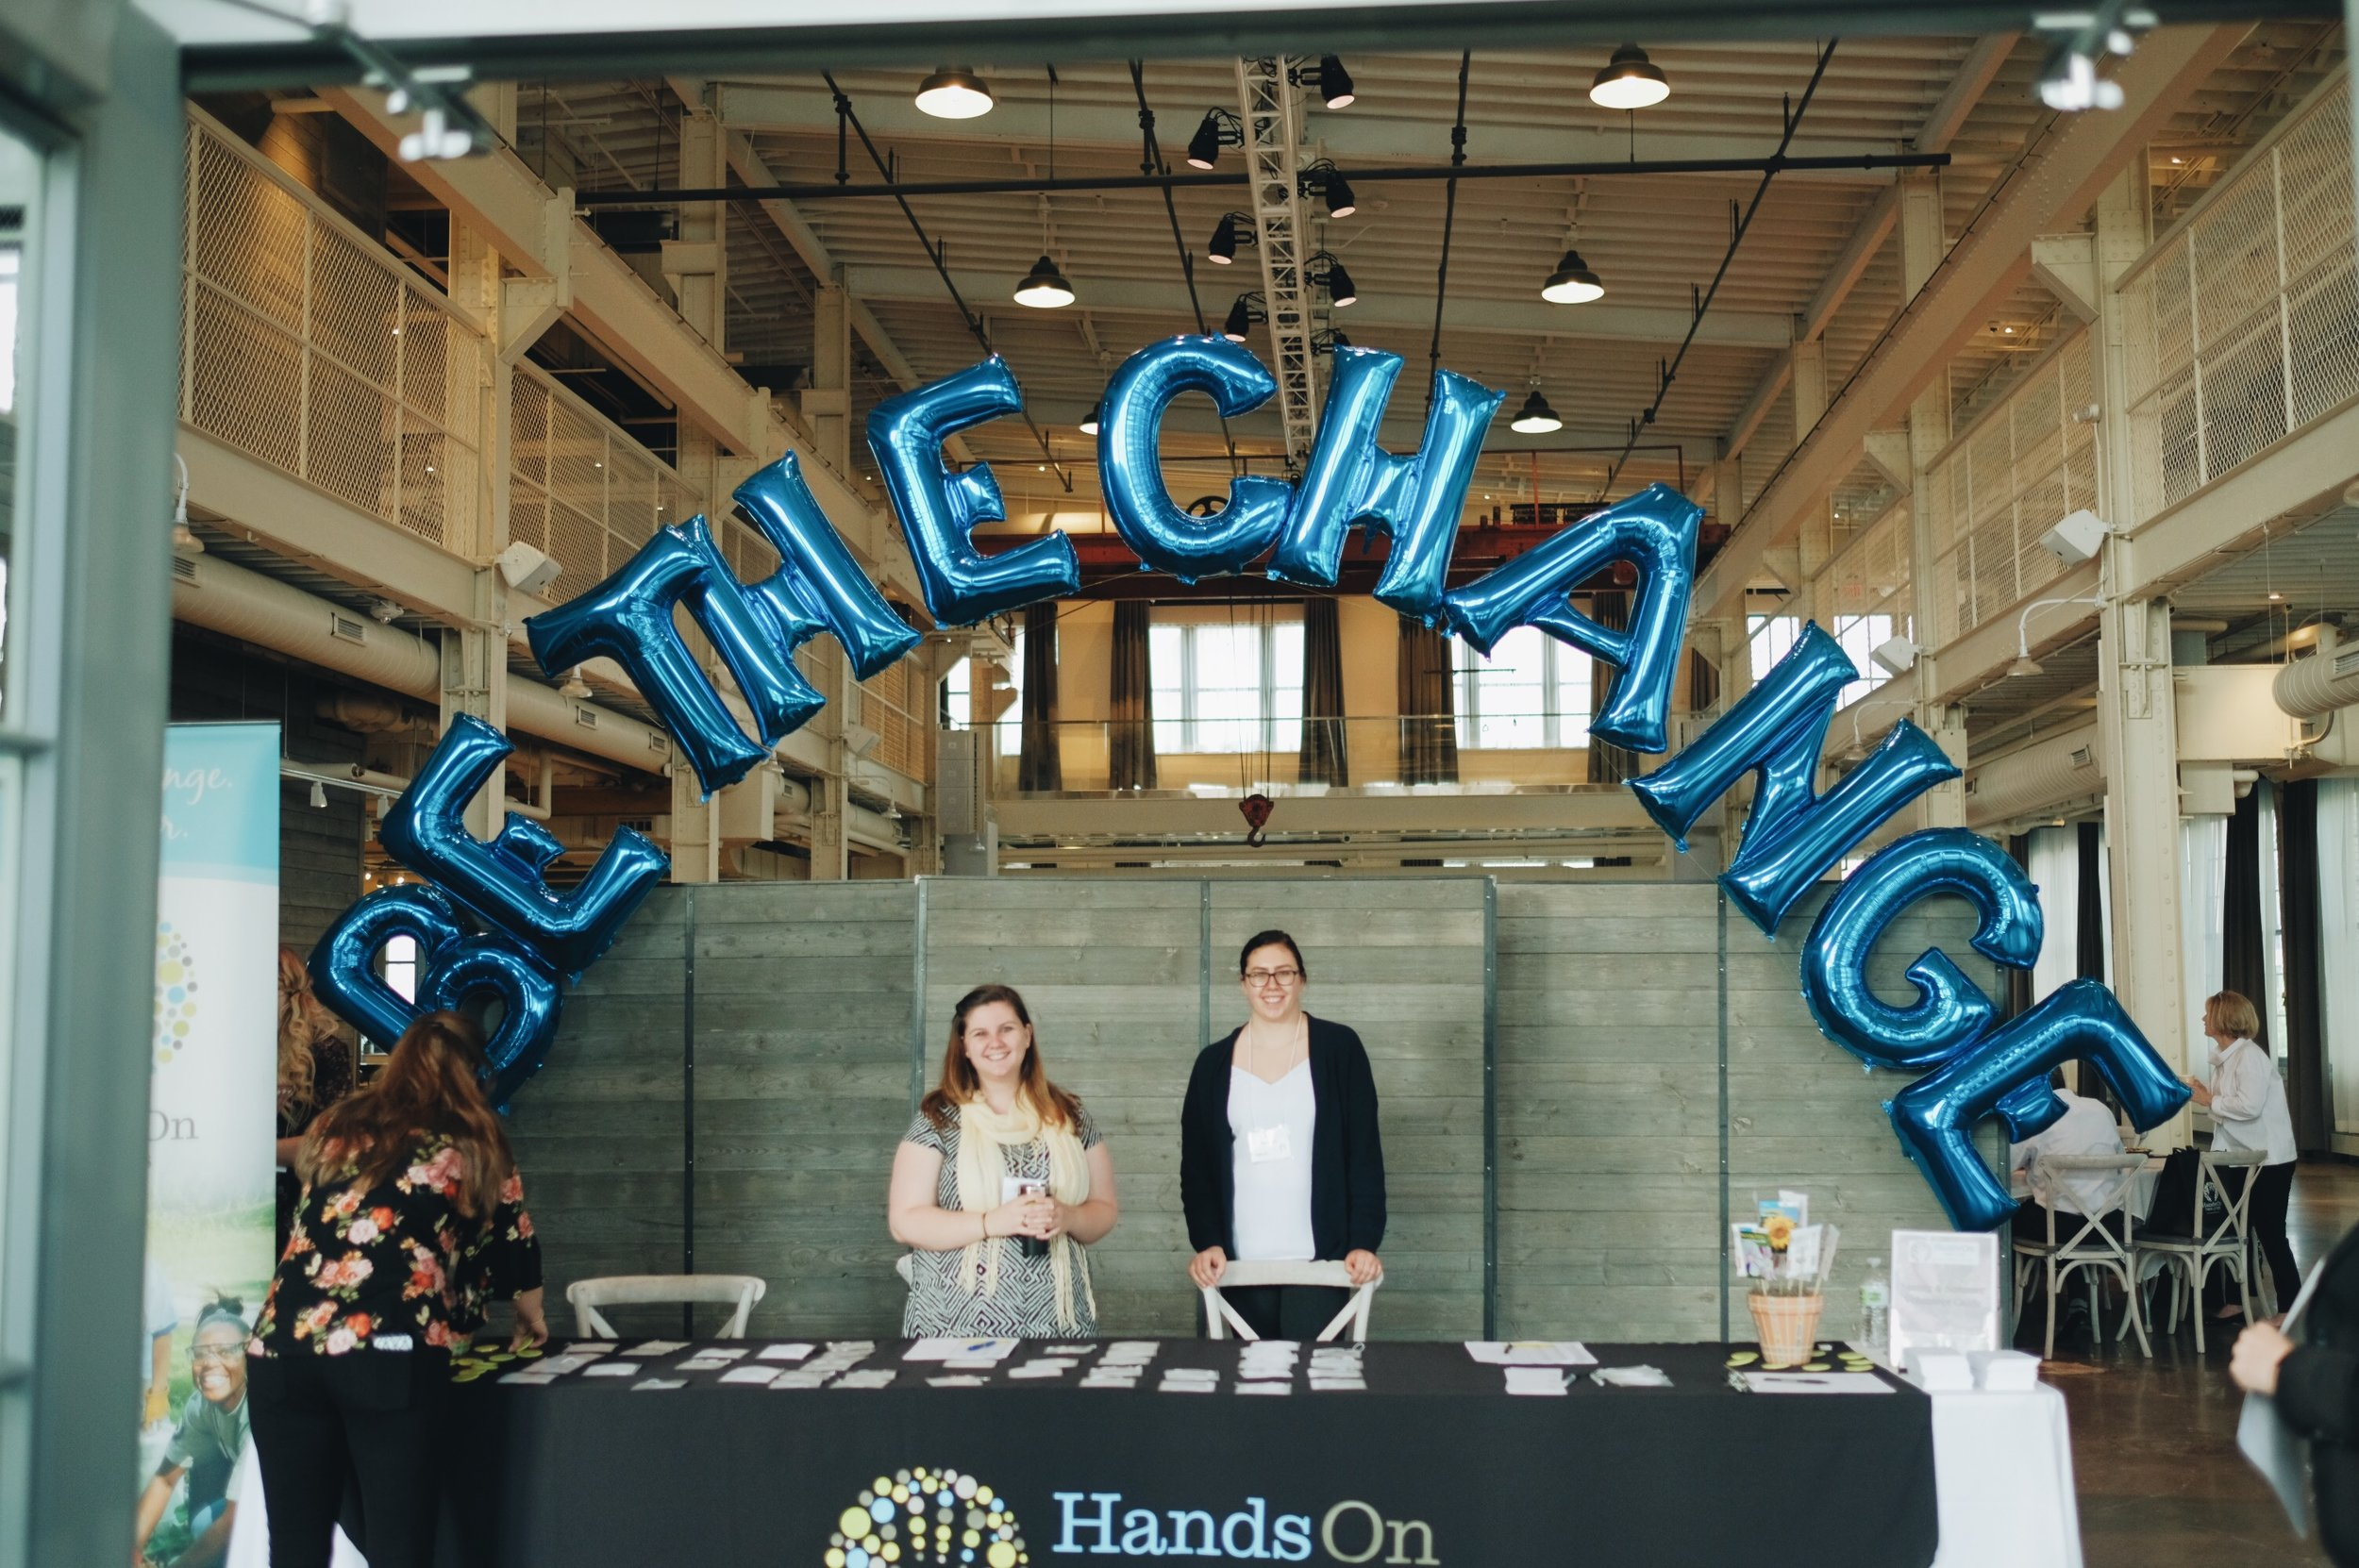 """Thank you  Anagram Balloons for providing some beautiful balloons for the event! Guests grabbed pictures under the """"Be The Change"""" arch upon arrival! #BeTheChange  #HOTCMN"""